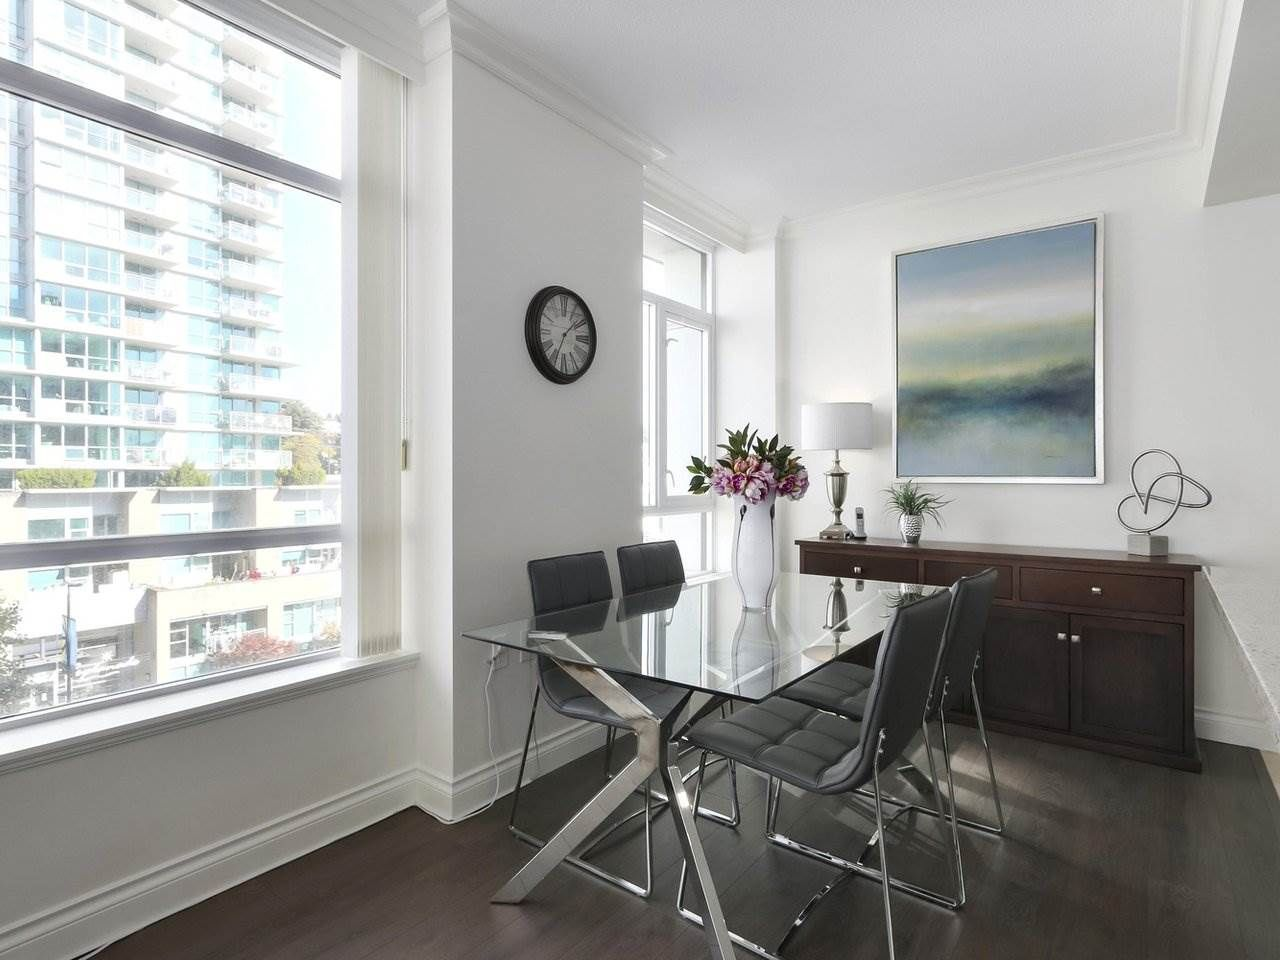 """Photo 6: Photos: 608 172 VICTORY SHIP Way in North Vancouver: Lower Lonsdale Condo for sale in """"Atrium at the Pier"""" : MLS®# R2454404"""